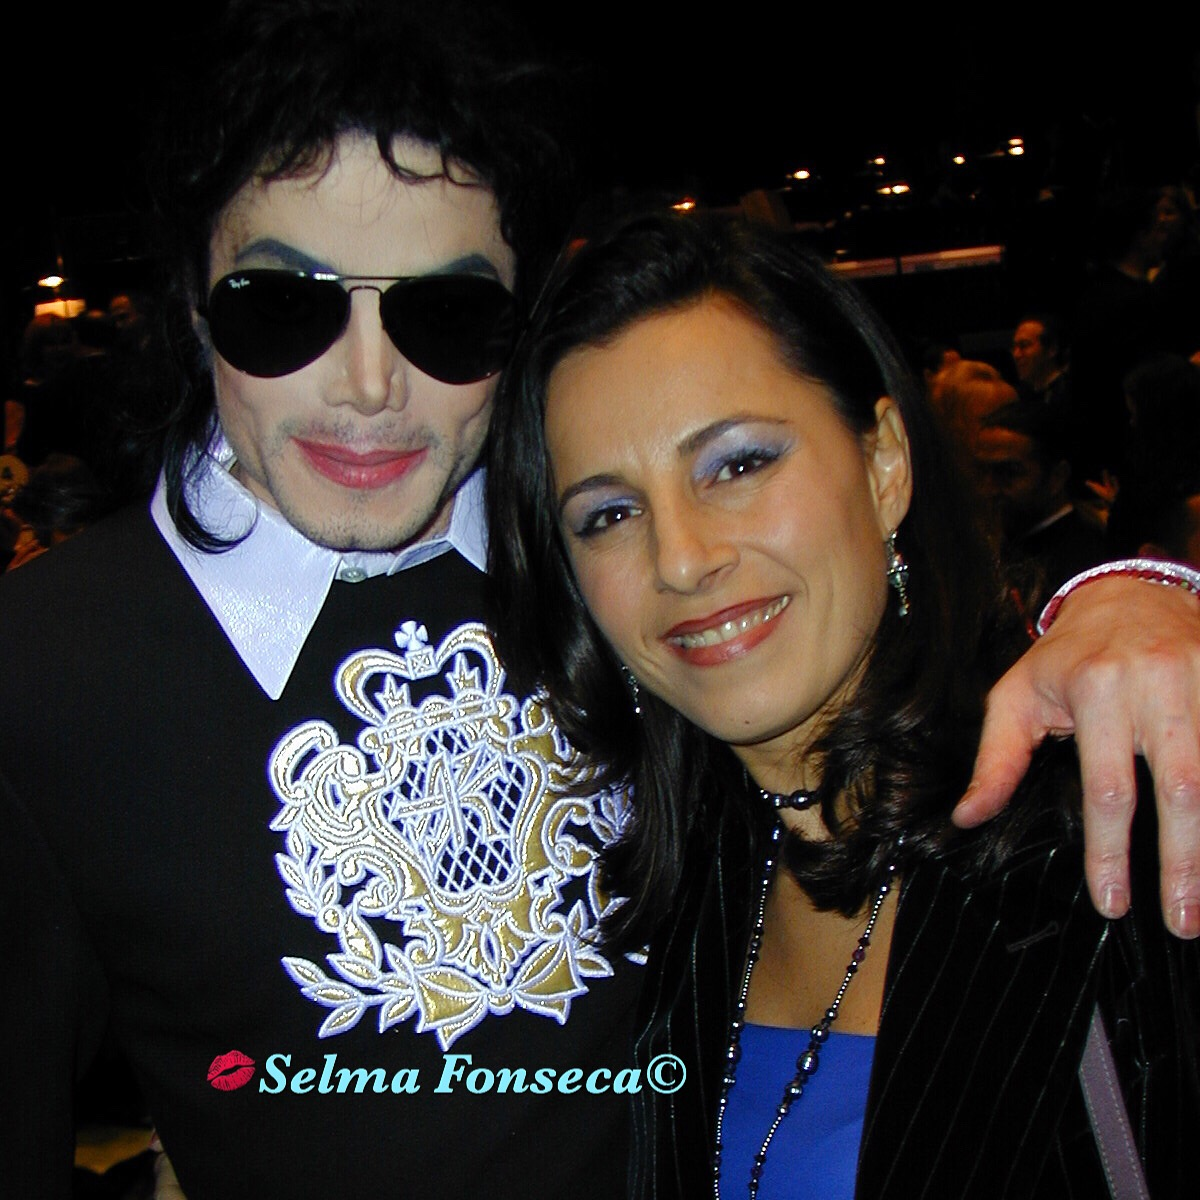 Michael Jackson and Selma Fonseca